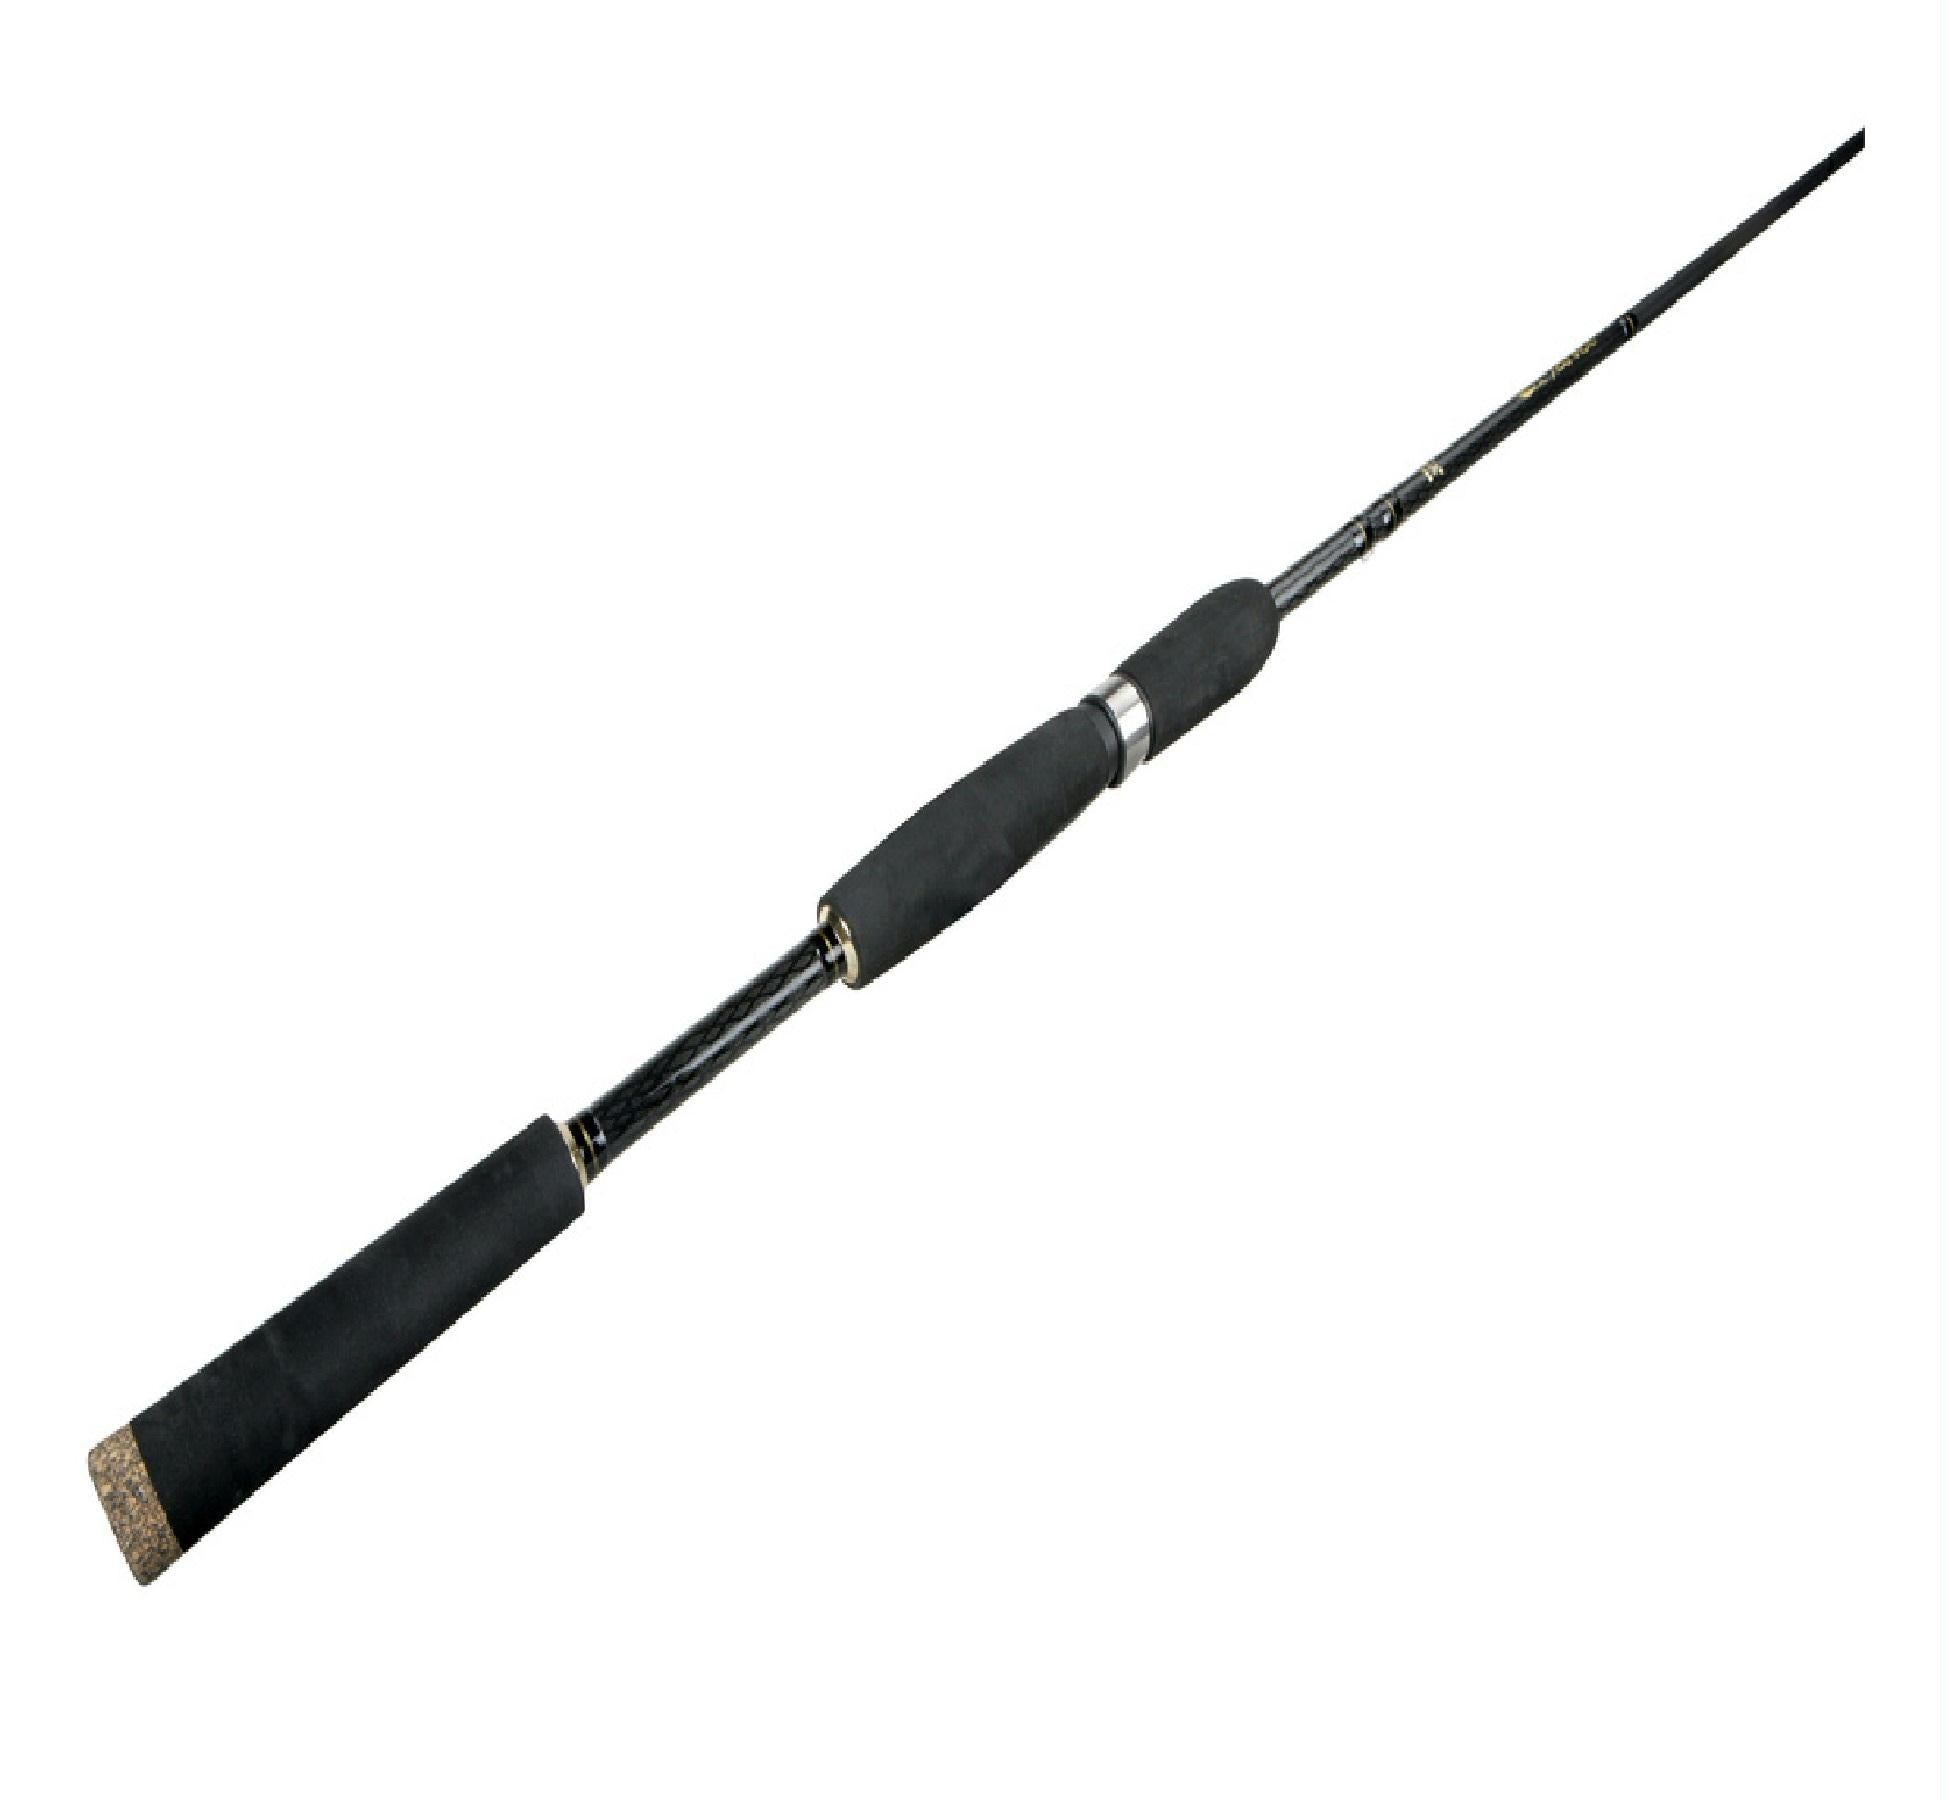 Okuma Tarvos Cast Rod 1pc 7ft MH - Survival Camping Pro